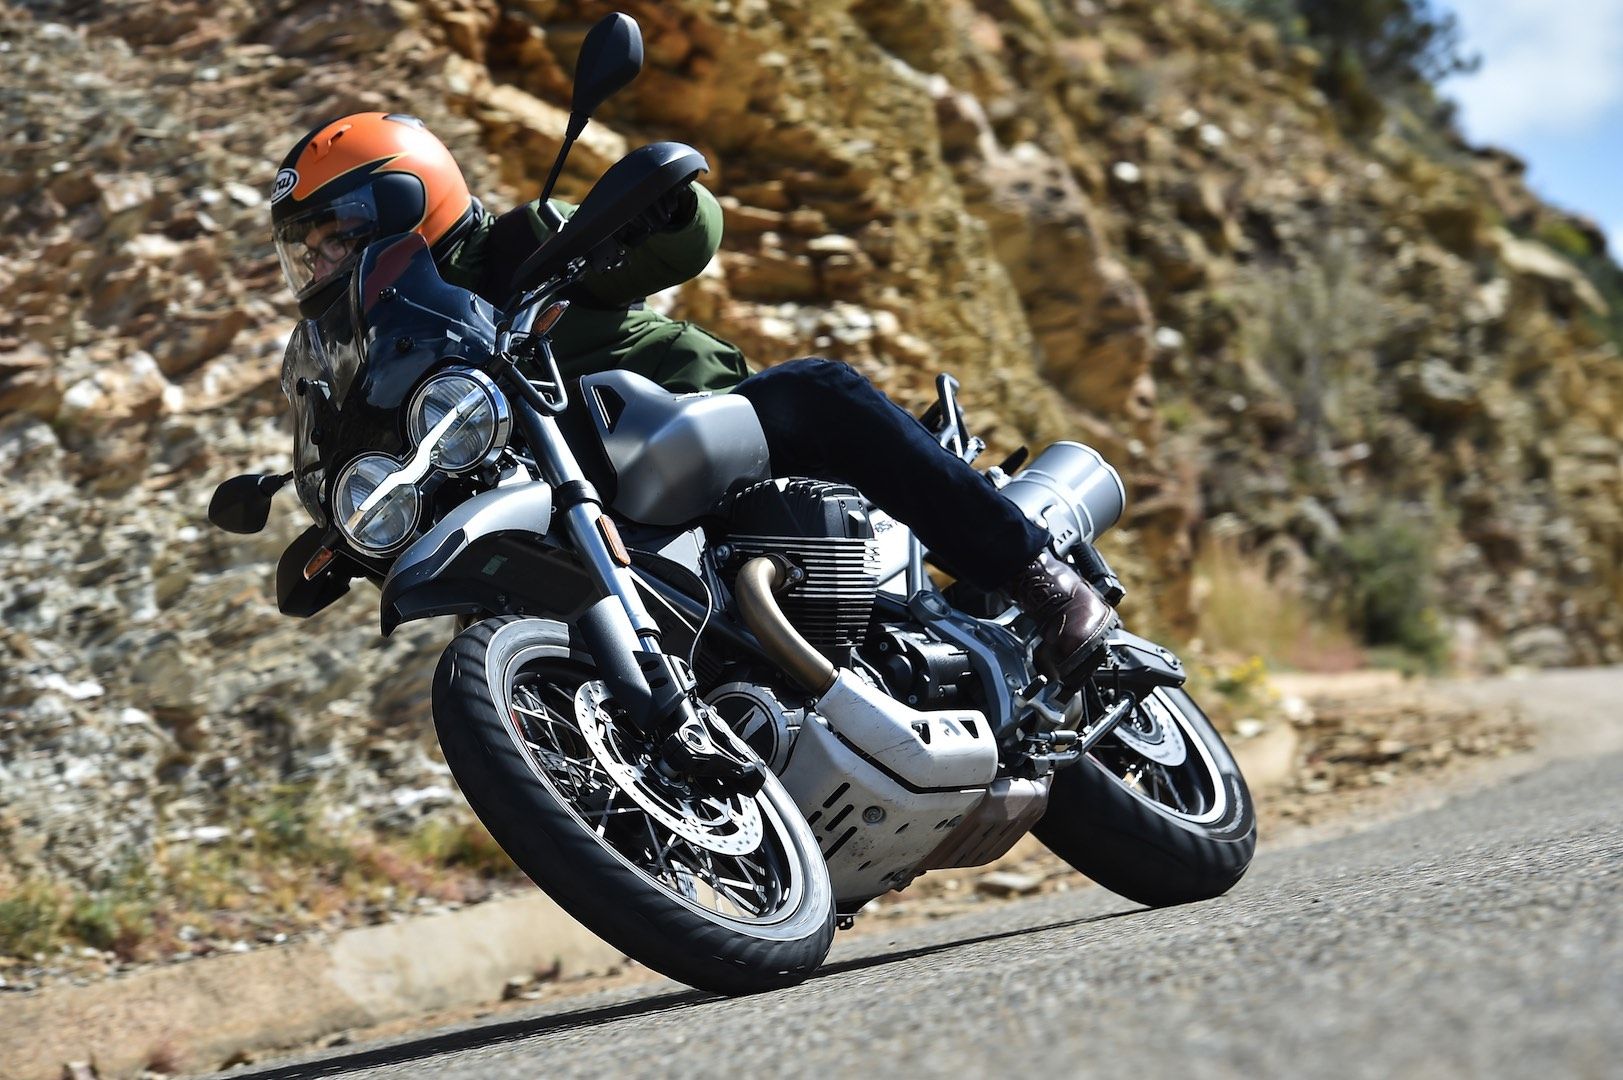 Moto Guzzi V85 TT Test - lean right